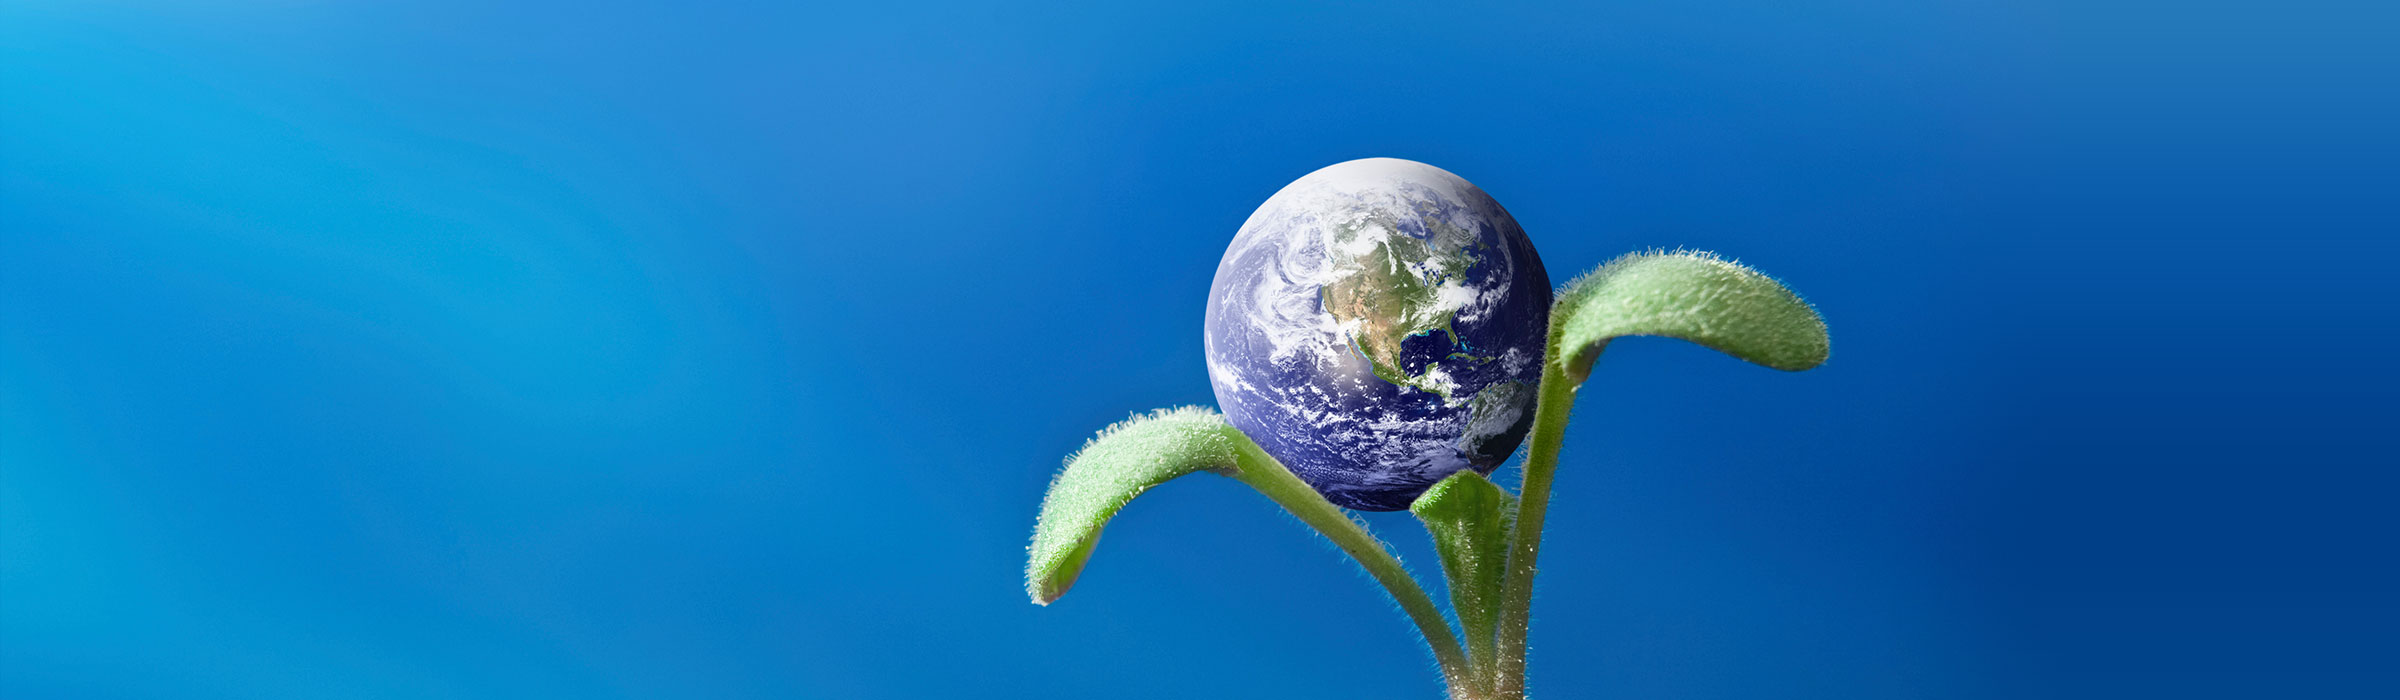 The Earth appearing from a distance behind a budding green plant, altogether seeming like a flower.